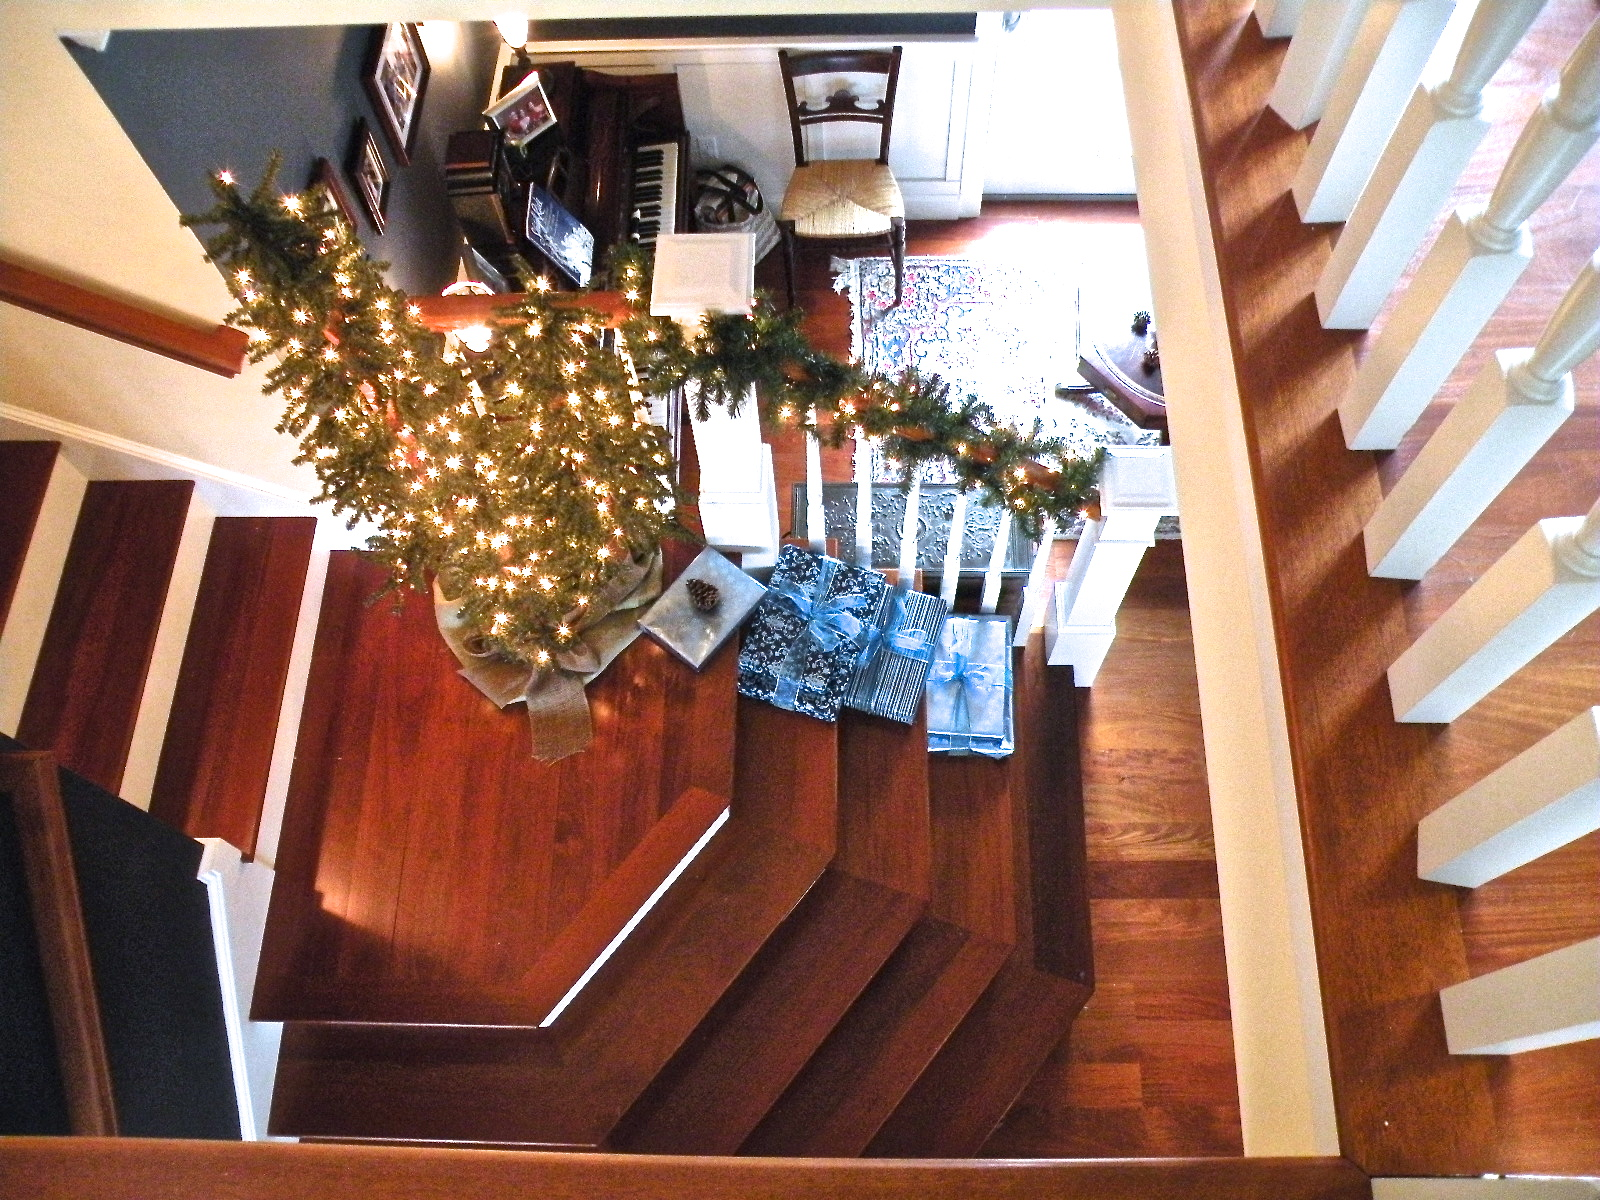 Staircase with lit Christmas tree, blue wrapped packages, Coastal Christmas